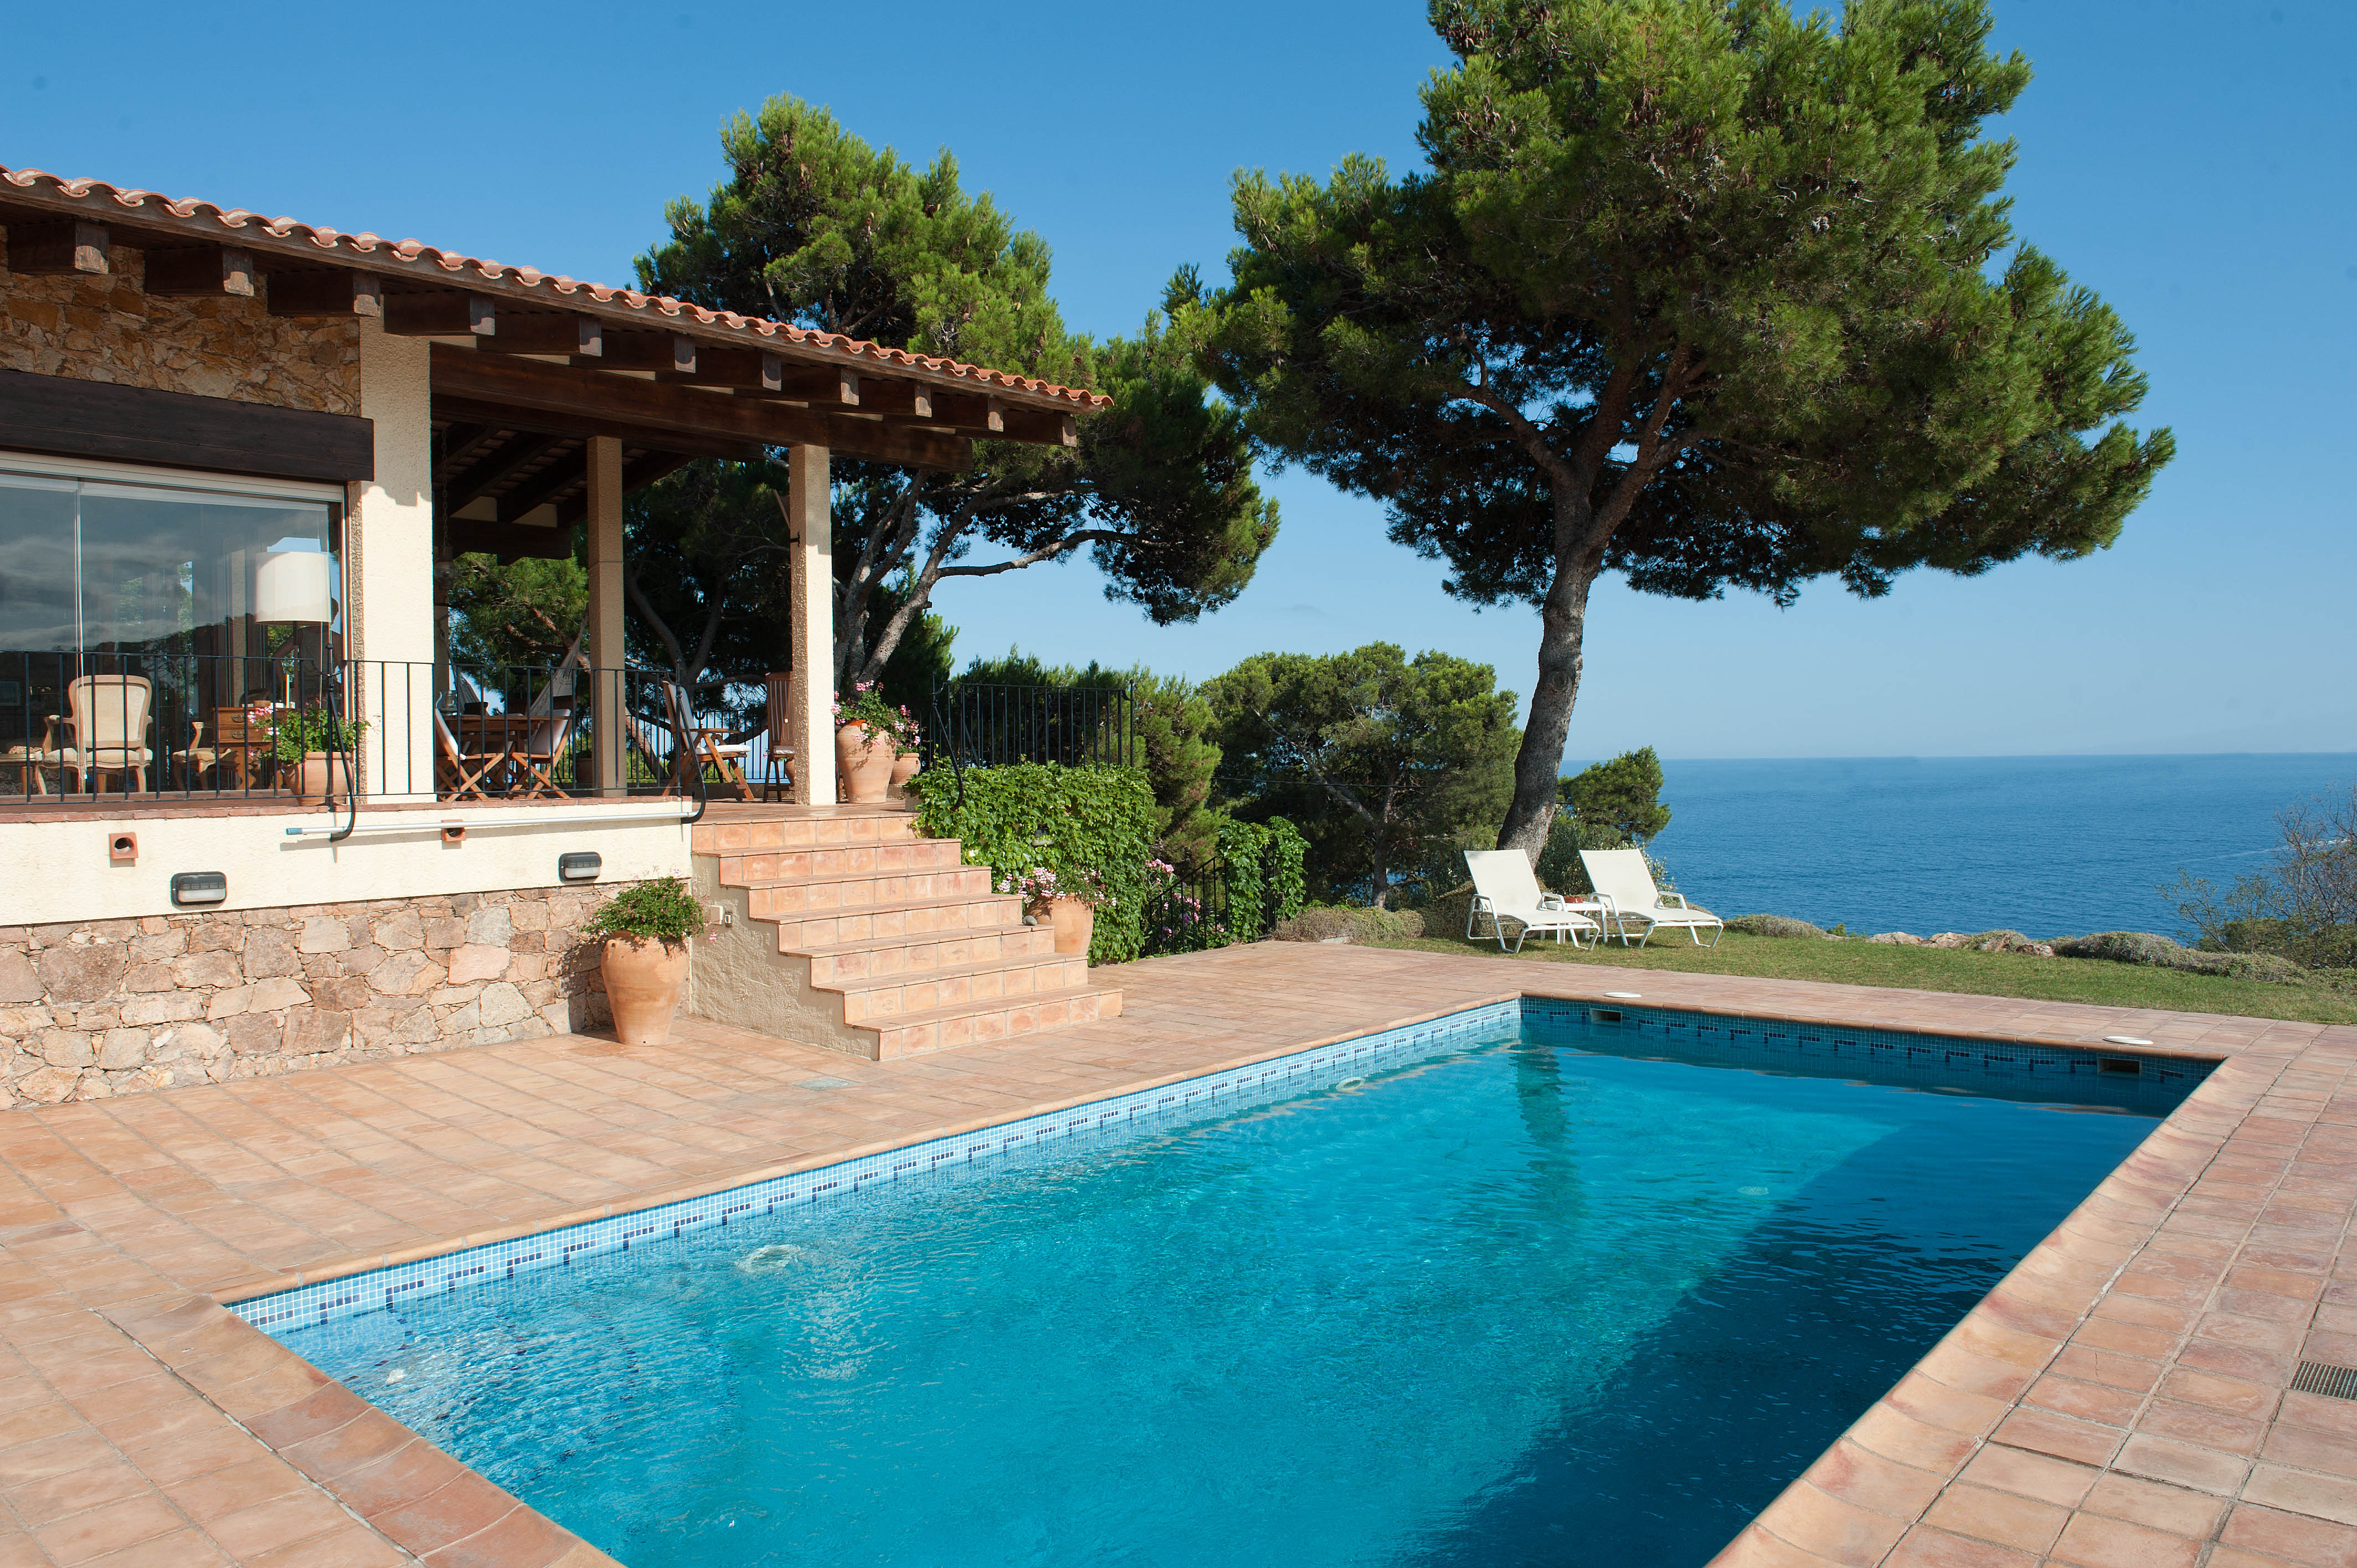 Single Family Home for Sale at House in Tamariu with beautiful views on a unique plot Tamariu, Costa Brava, 17212 Spain